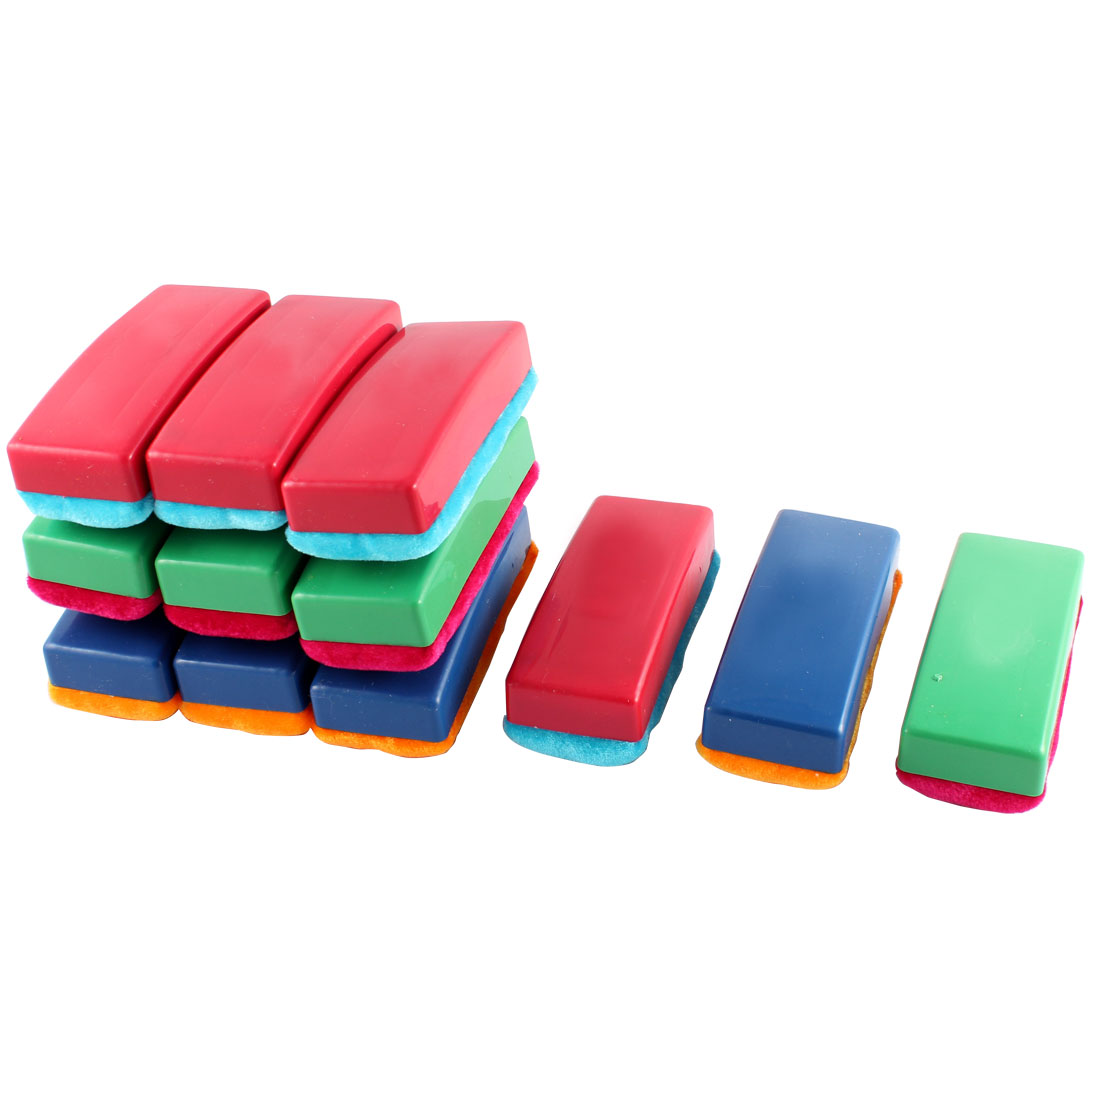 12 Pcs Plastic Shell Magnetic Blackboard Eraser Chalk Cleaner Red Blue Yellow